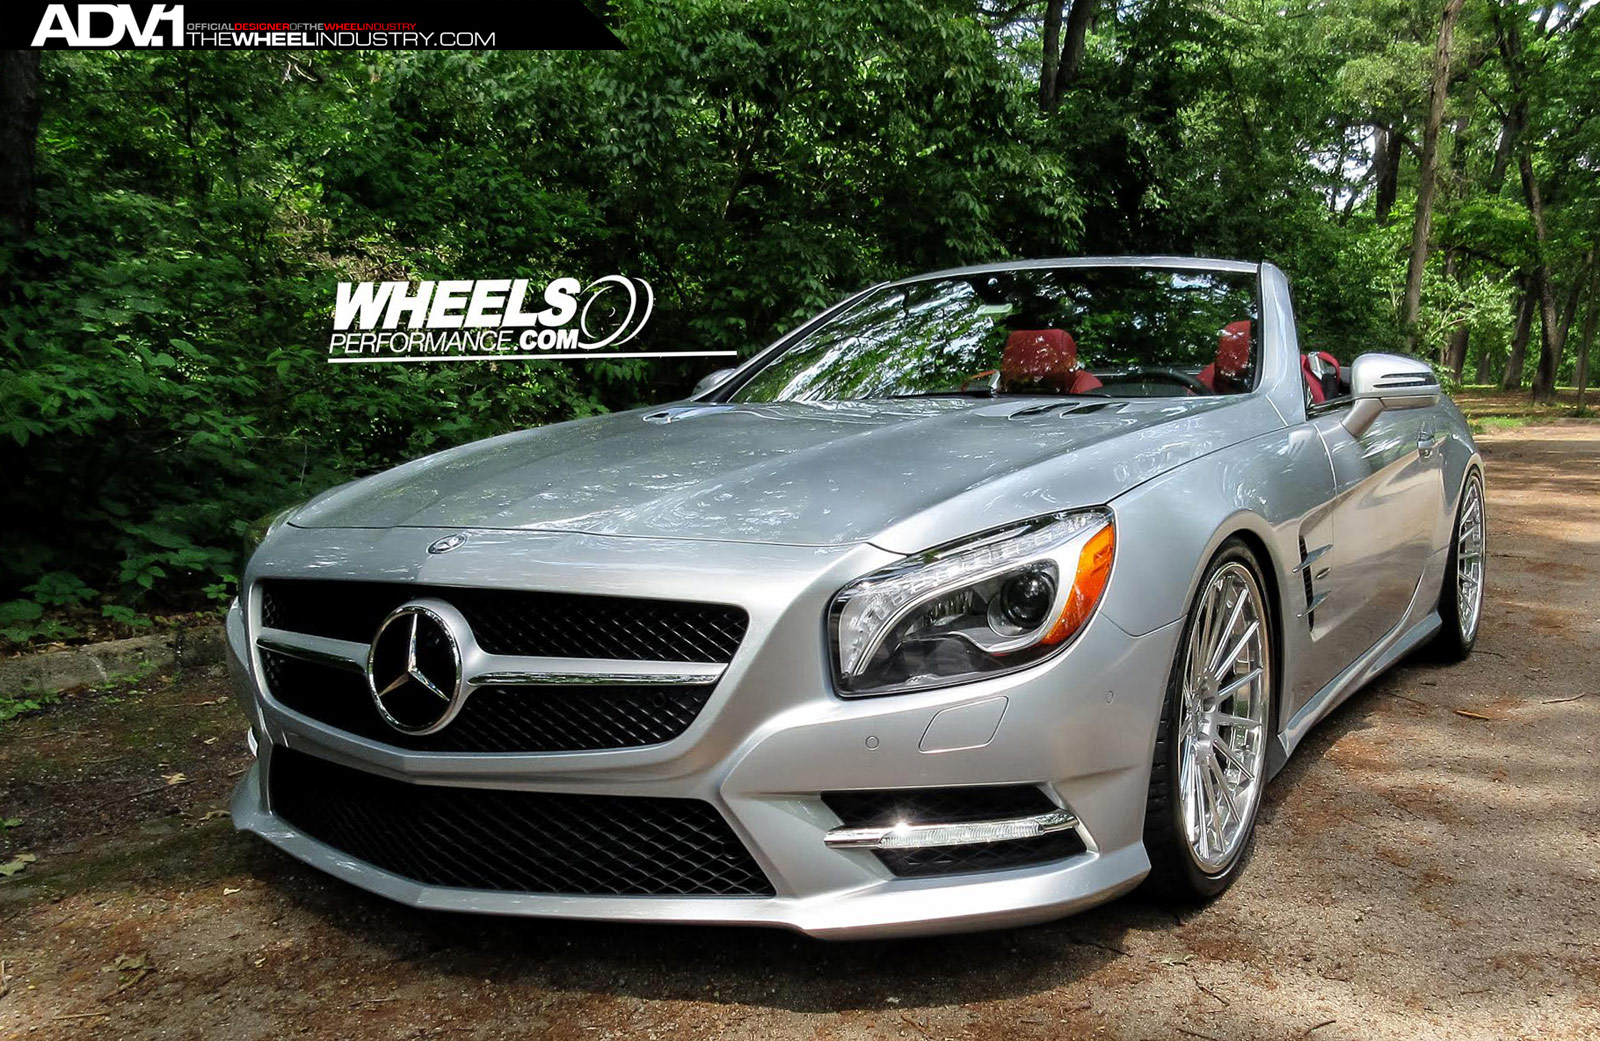 2018 mercedes benz sl550 car photos catalog 2018 for Mercedes benz sl550